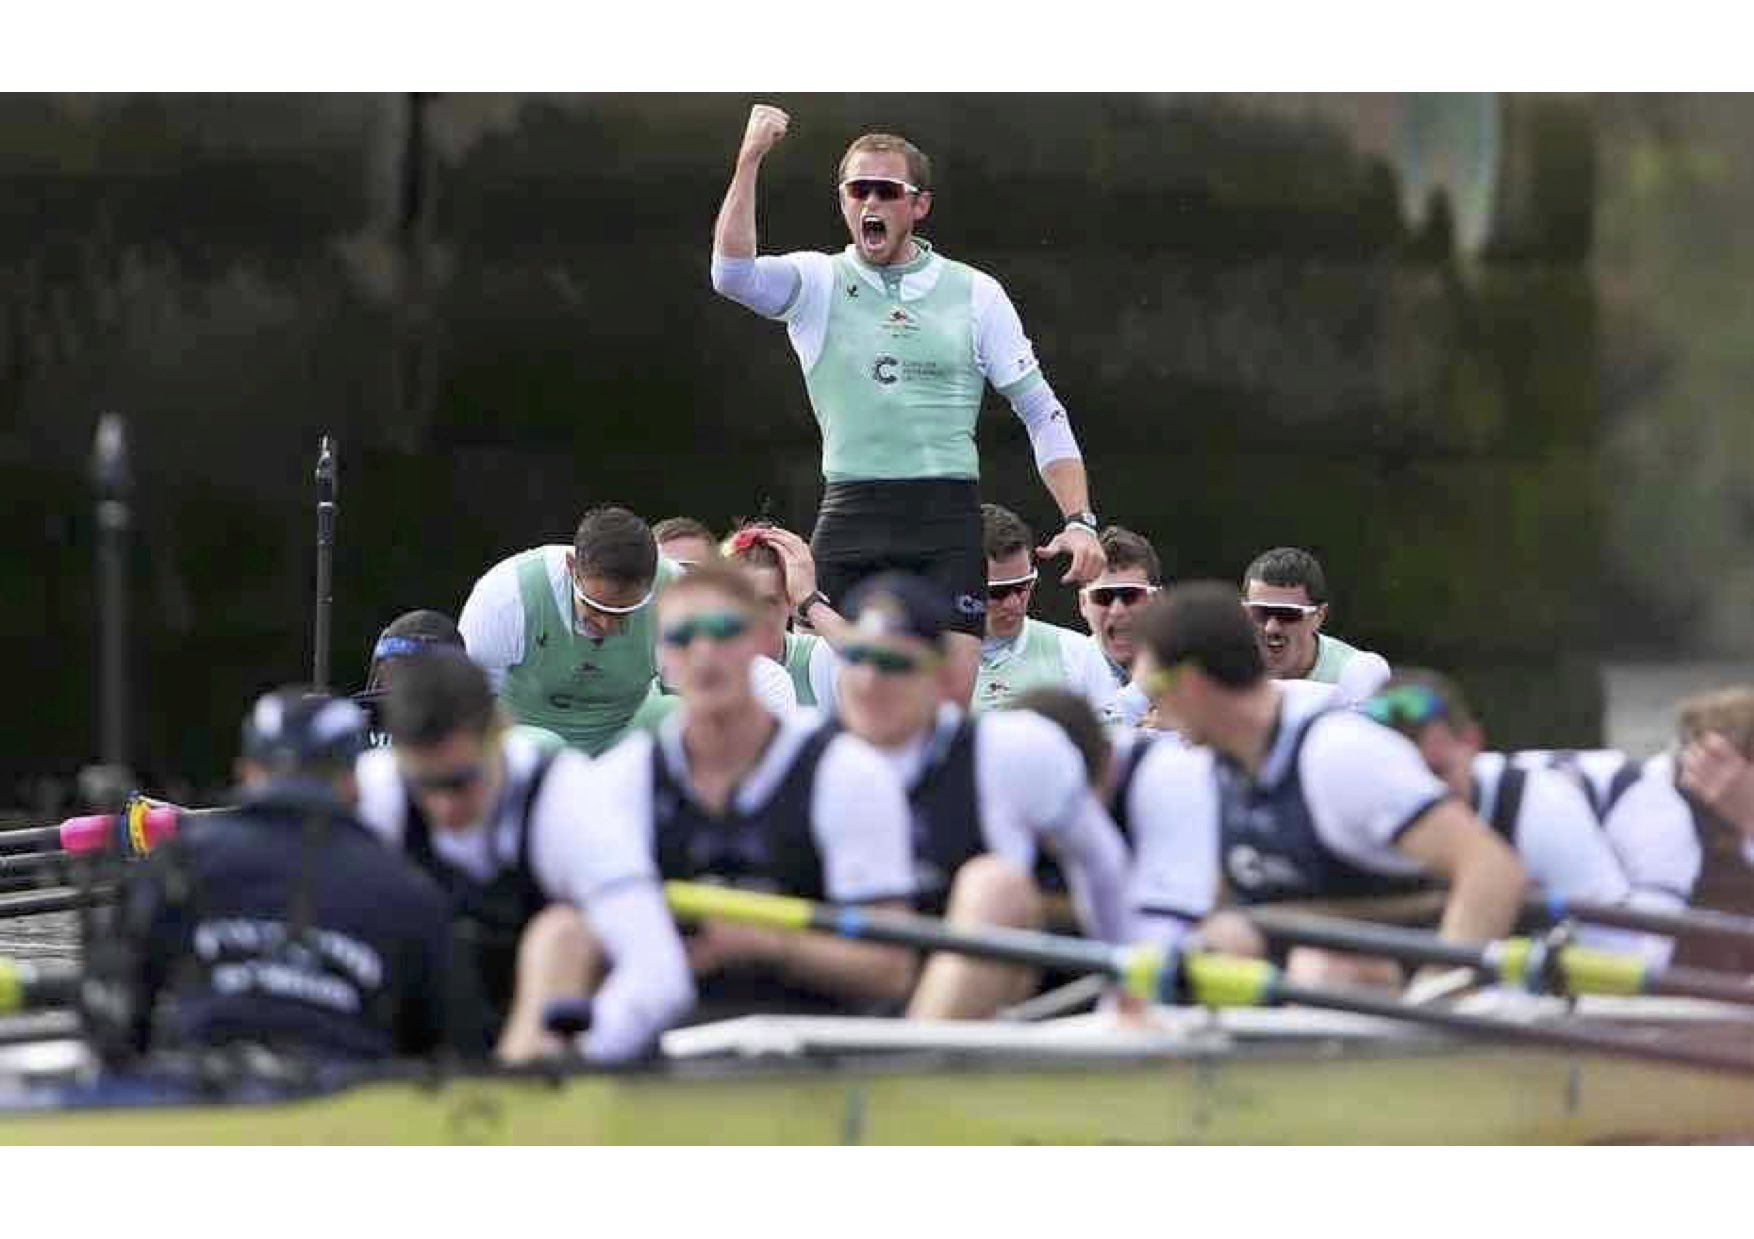 This year's men's team will be looking to replicate their dramatic victory in 2016 (photo credit: The Guardian)